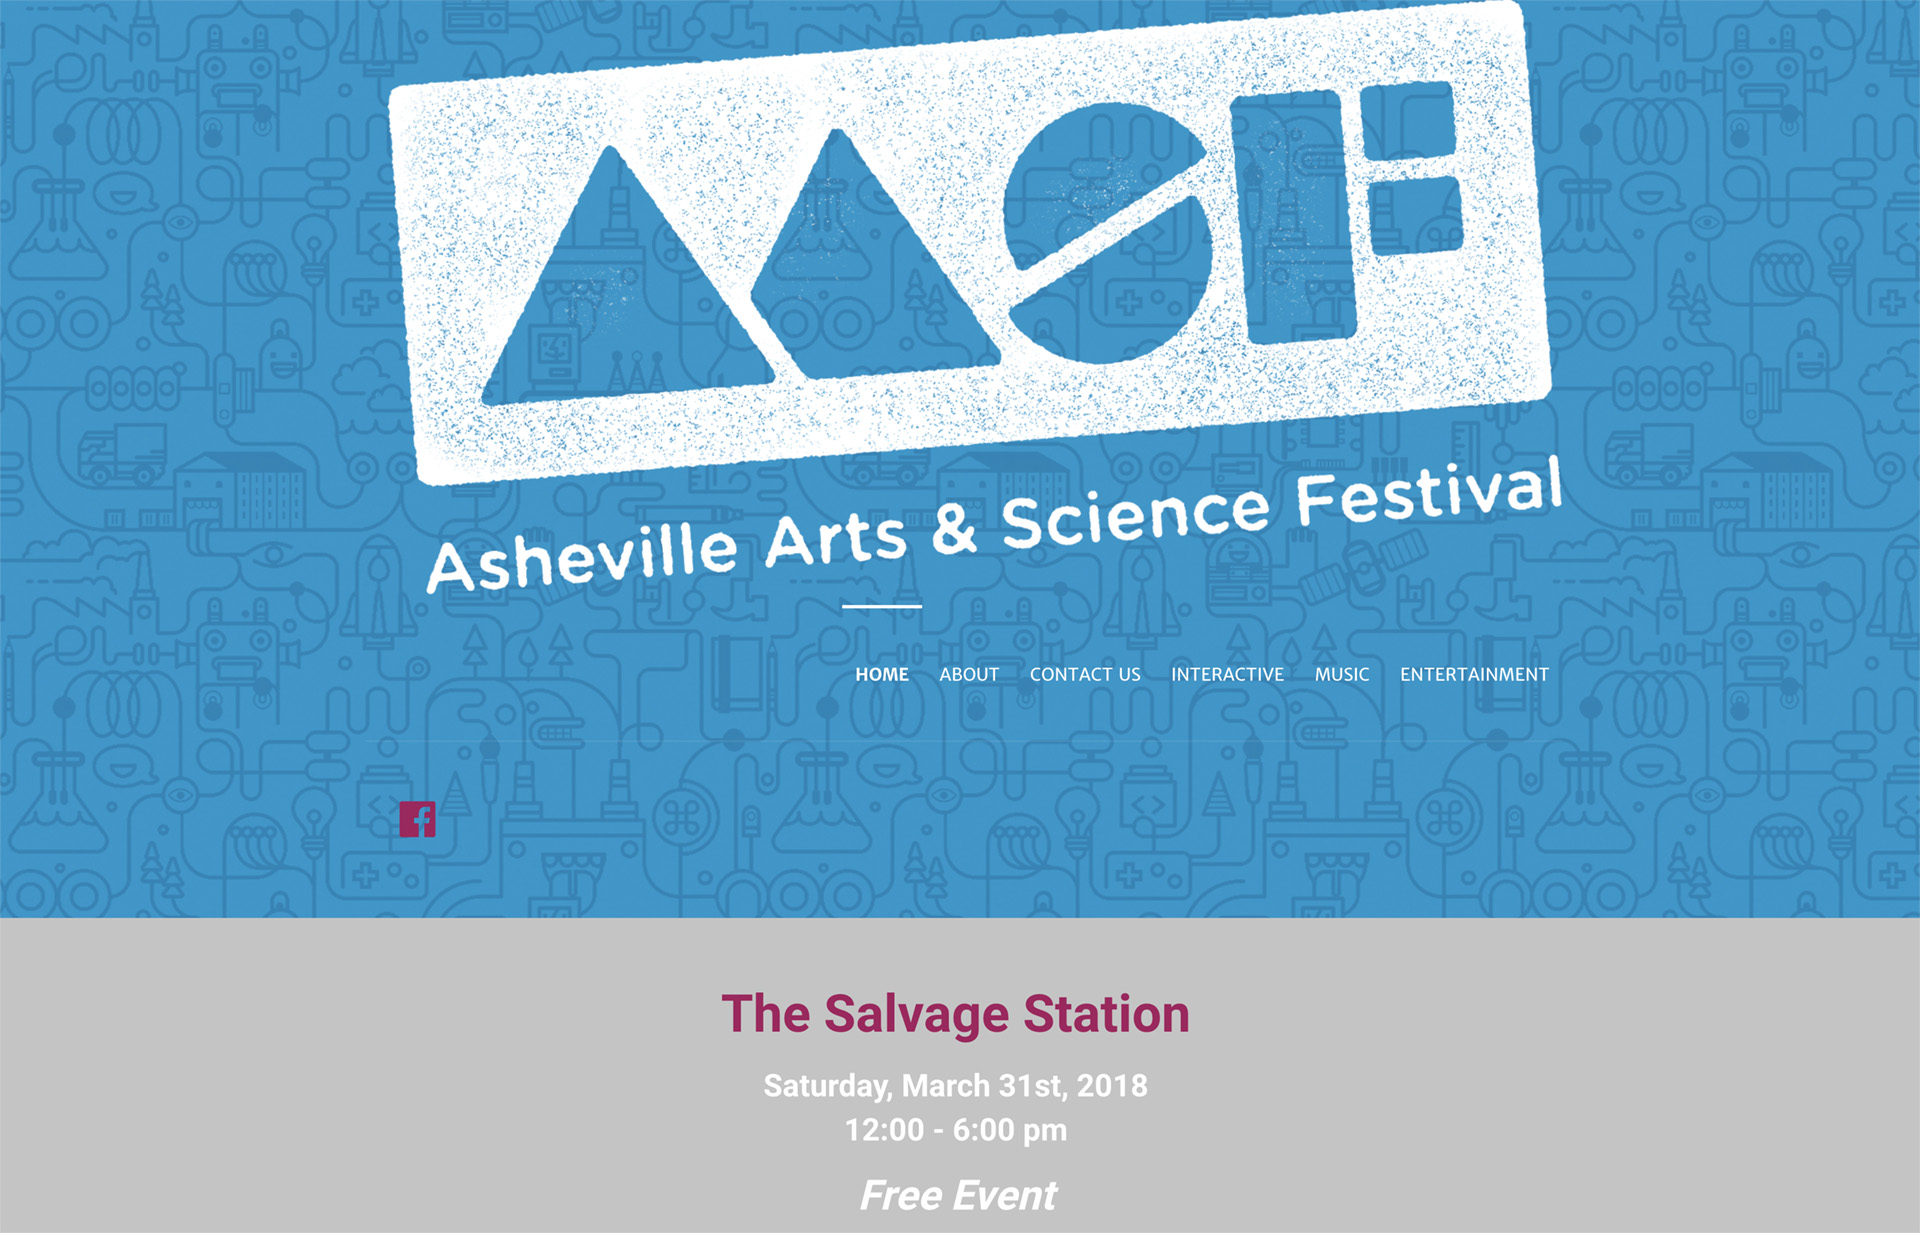 Asheville Arts & Science Festival